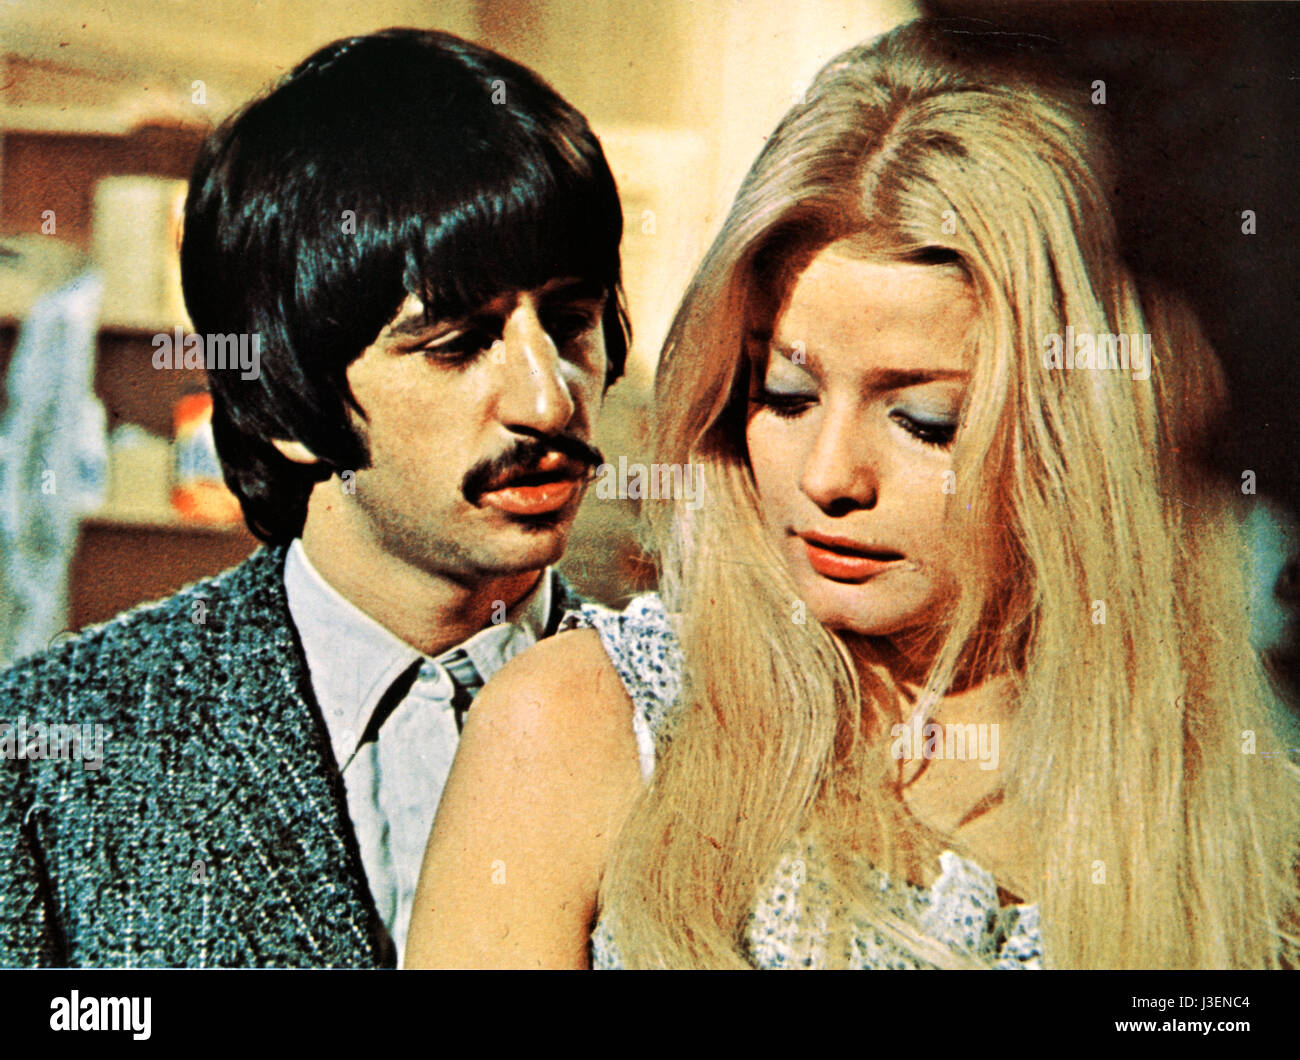 Candy Year: 1968 USA / Italy Director : Christian Marquand Ewa Aulin, Ringo Starr - Stock Image